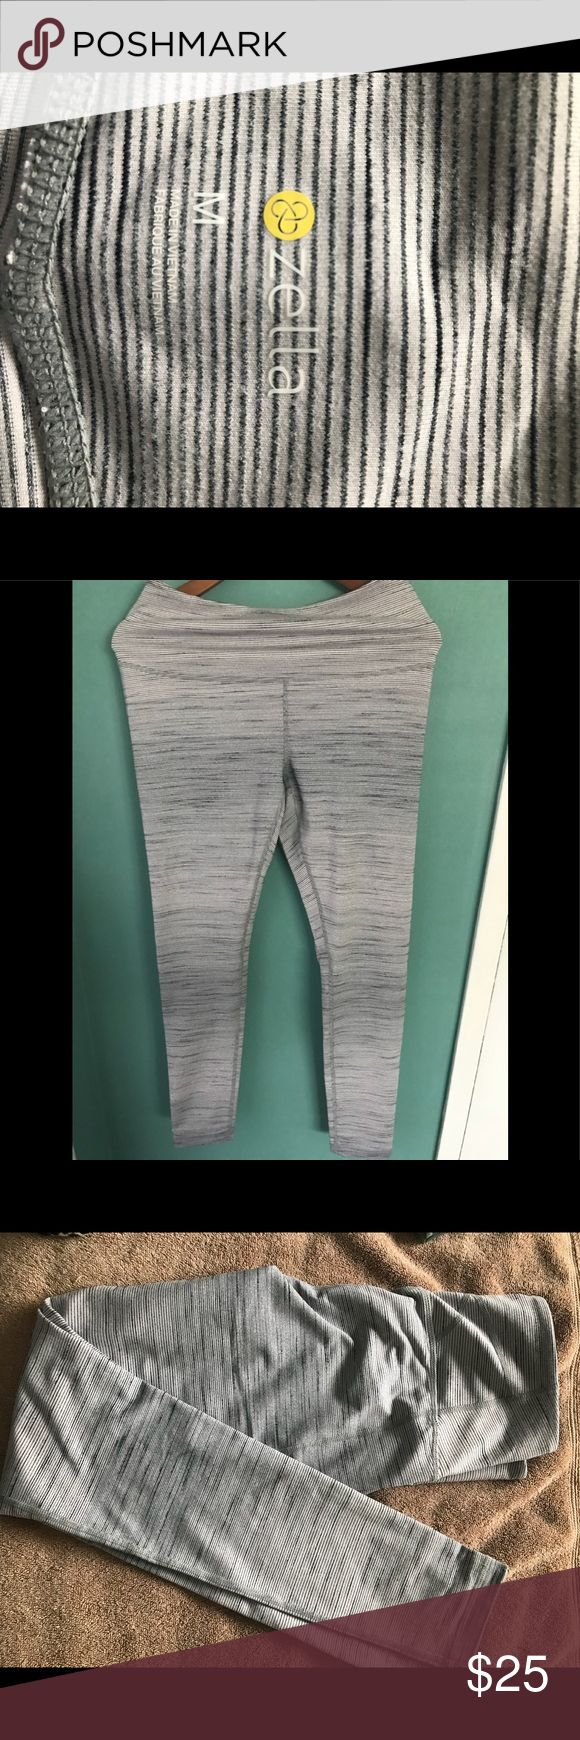 Zella workout pants Size M Zella workout pants; high waisted (great for holding in the tummy): color is gray with subtle black and white stripes; pants are ankle length; has pocket in waist for keys; never worn but took off the tags; for reference I'm 5'7 and 135 lbs and they fit great!  This is an awesome deal! Zella Pants Track Pants & Joggers